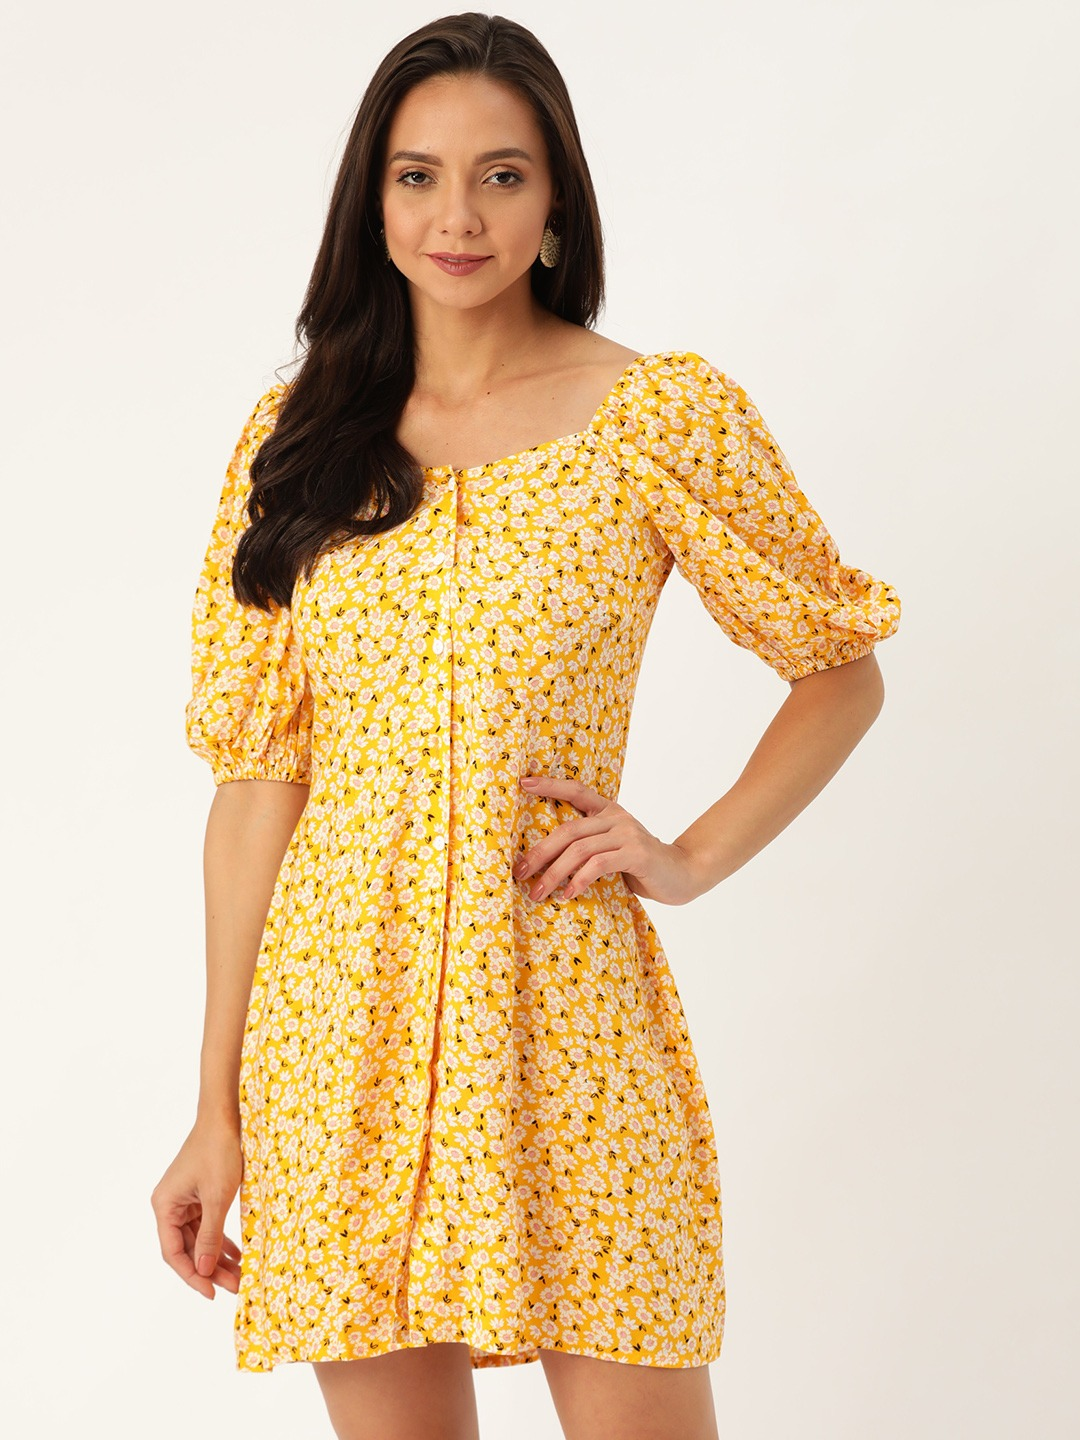 Dresses-Spring Sunshine Floral Dress1